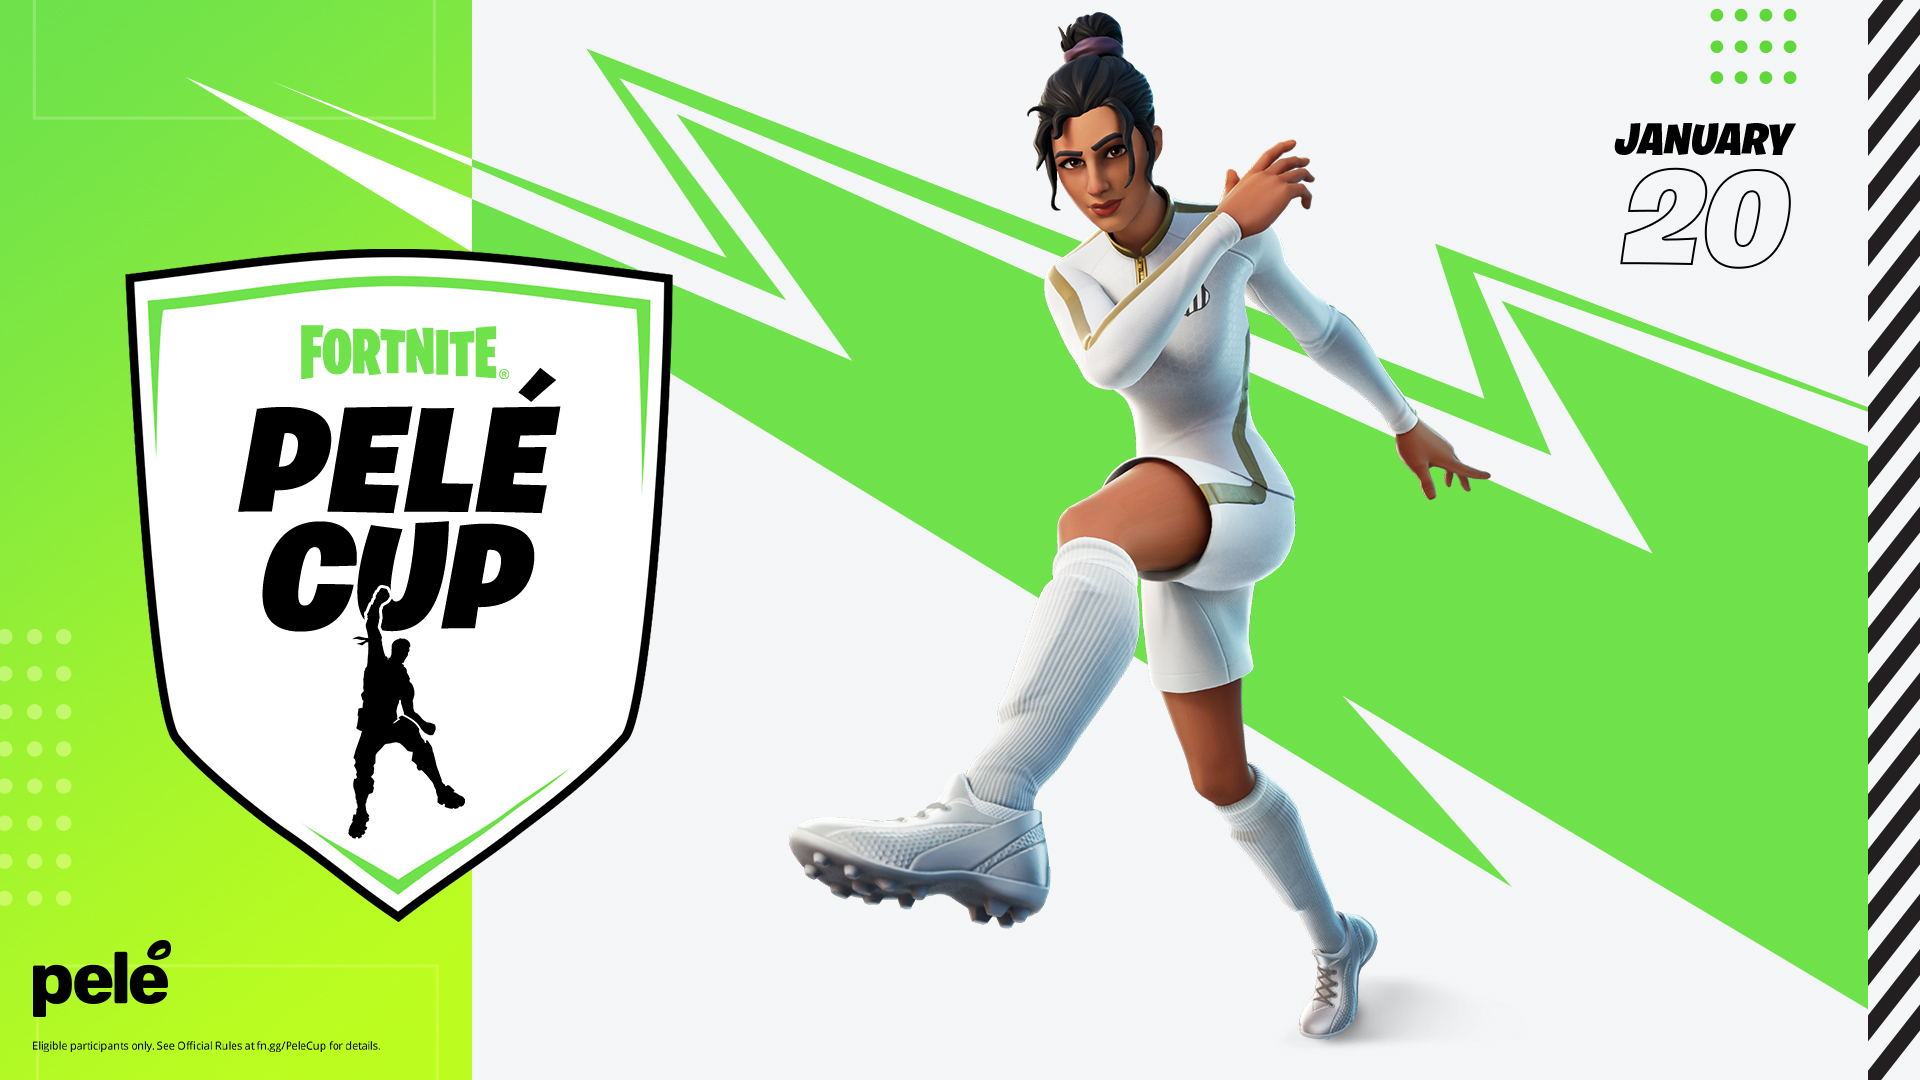 When Is The Fortnite Tournament Tomorrow Pele Cup Landing Tomorrow In Fortnite Epic Partnered With 23 Real World Football Clubs